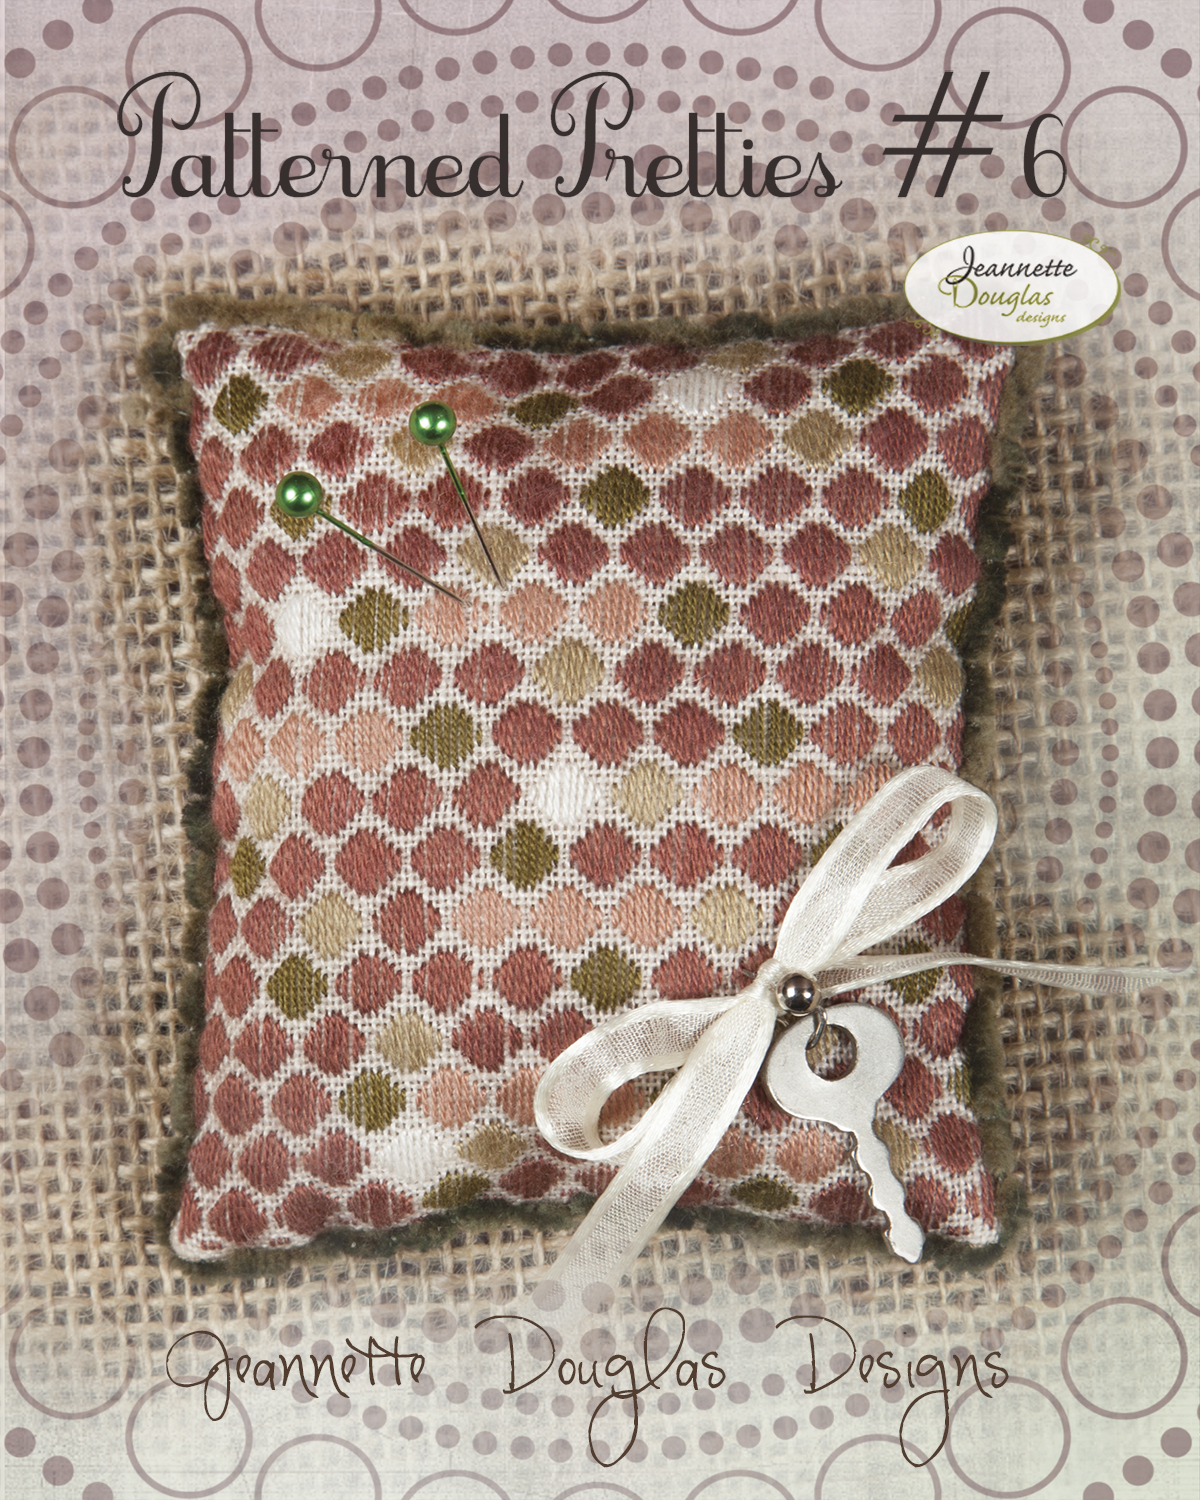 Patterned Pretties #6